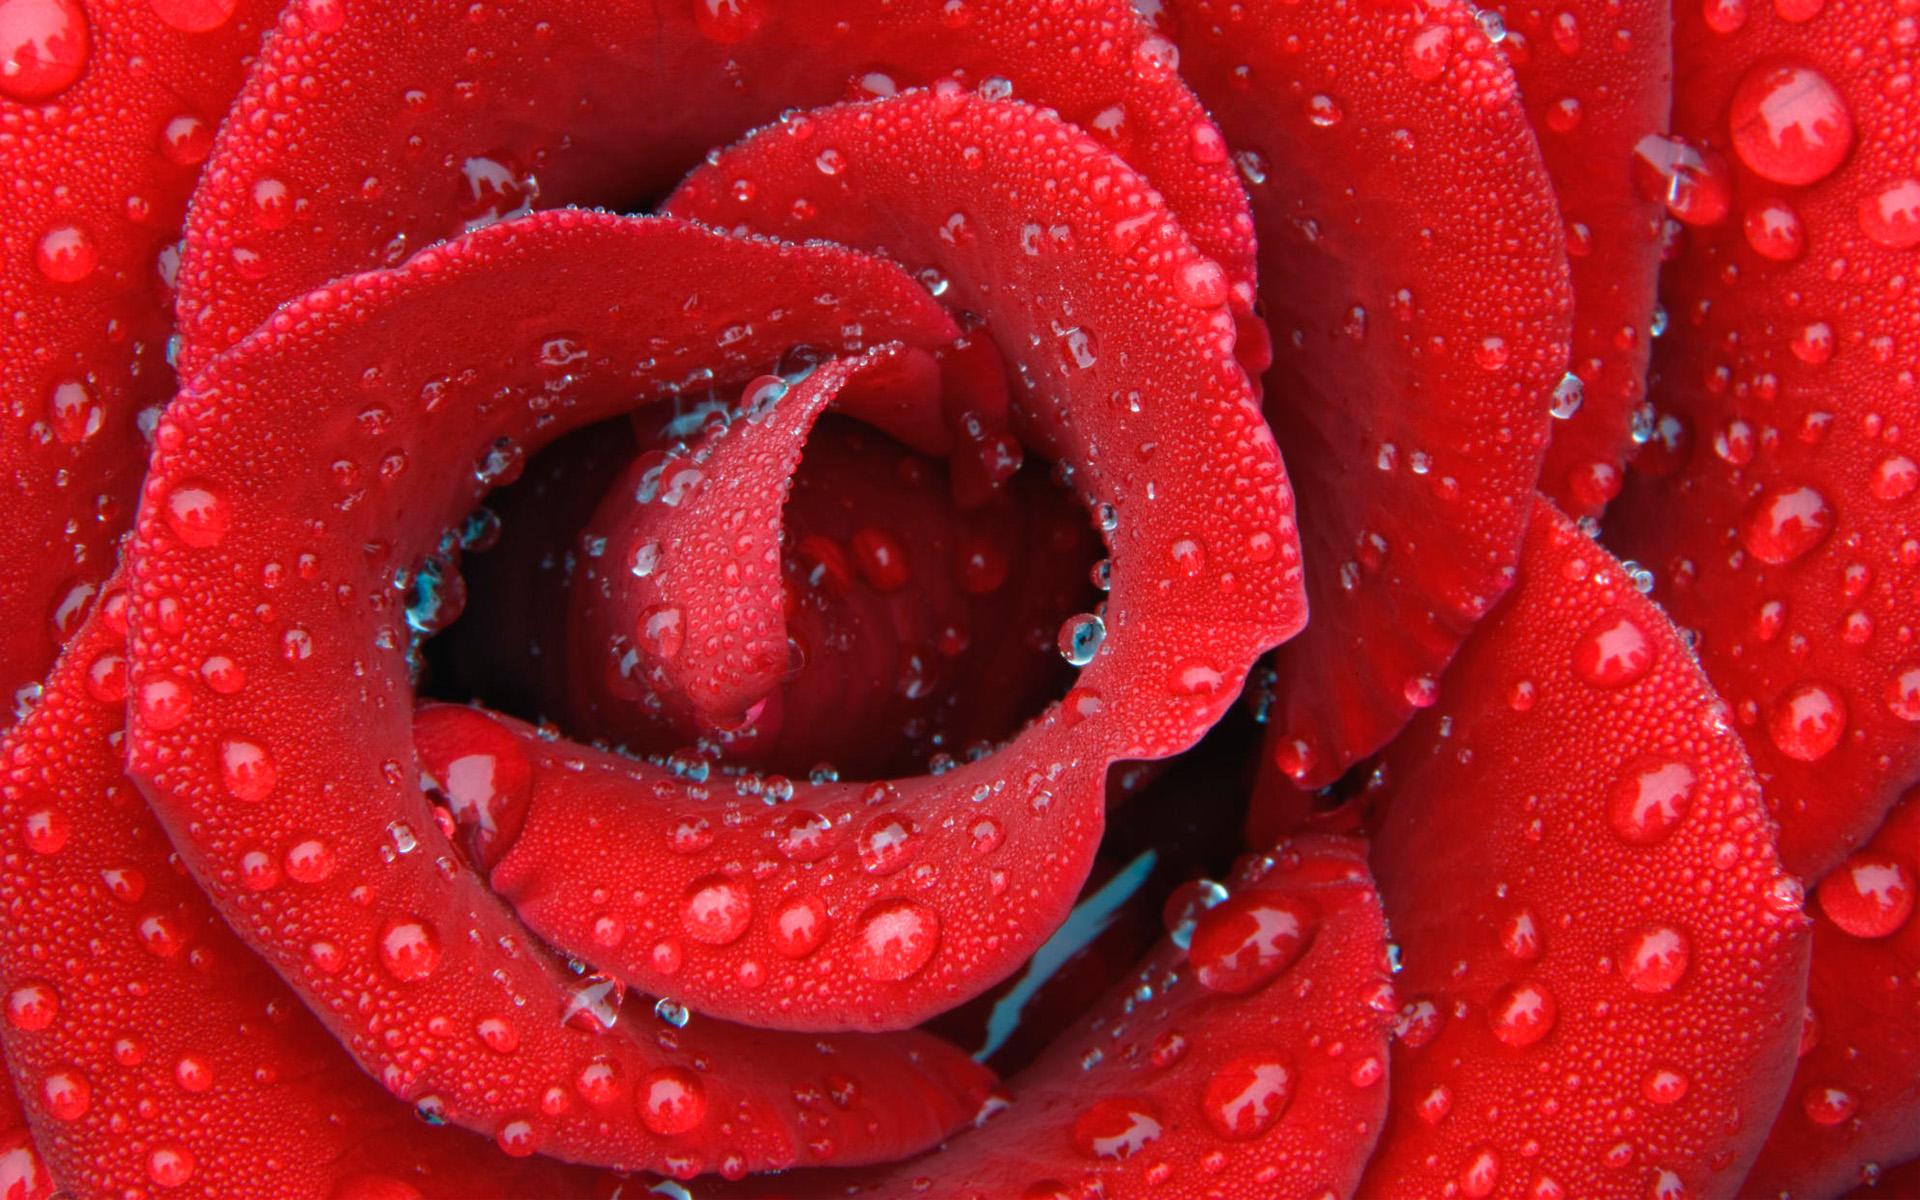 Hd wallpaper rose - Delicate Dewy Rose Wallpapers Hd Wallpapers